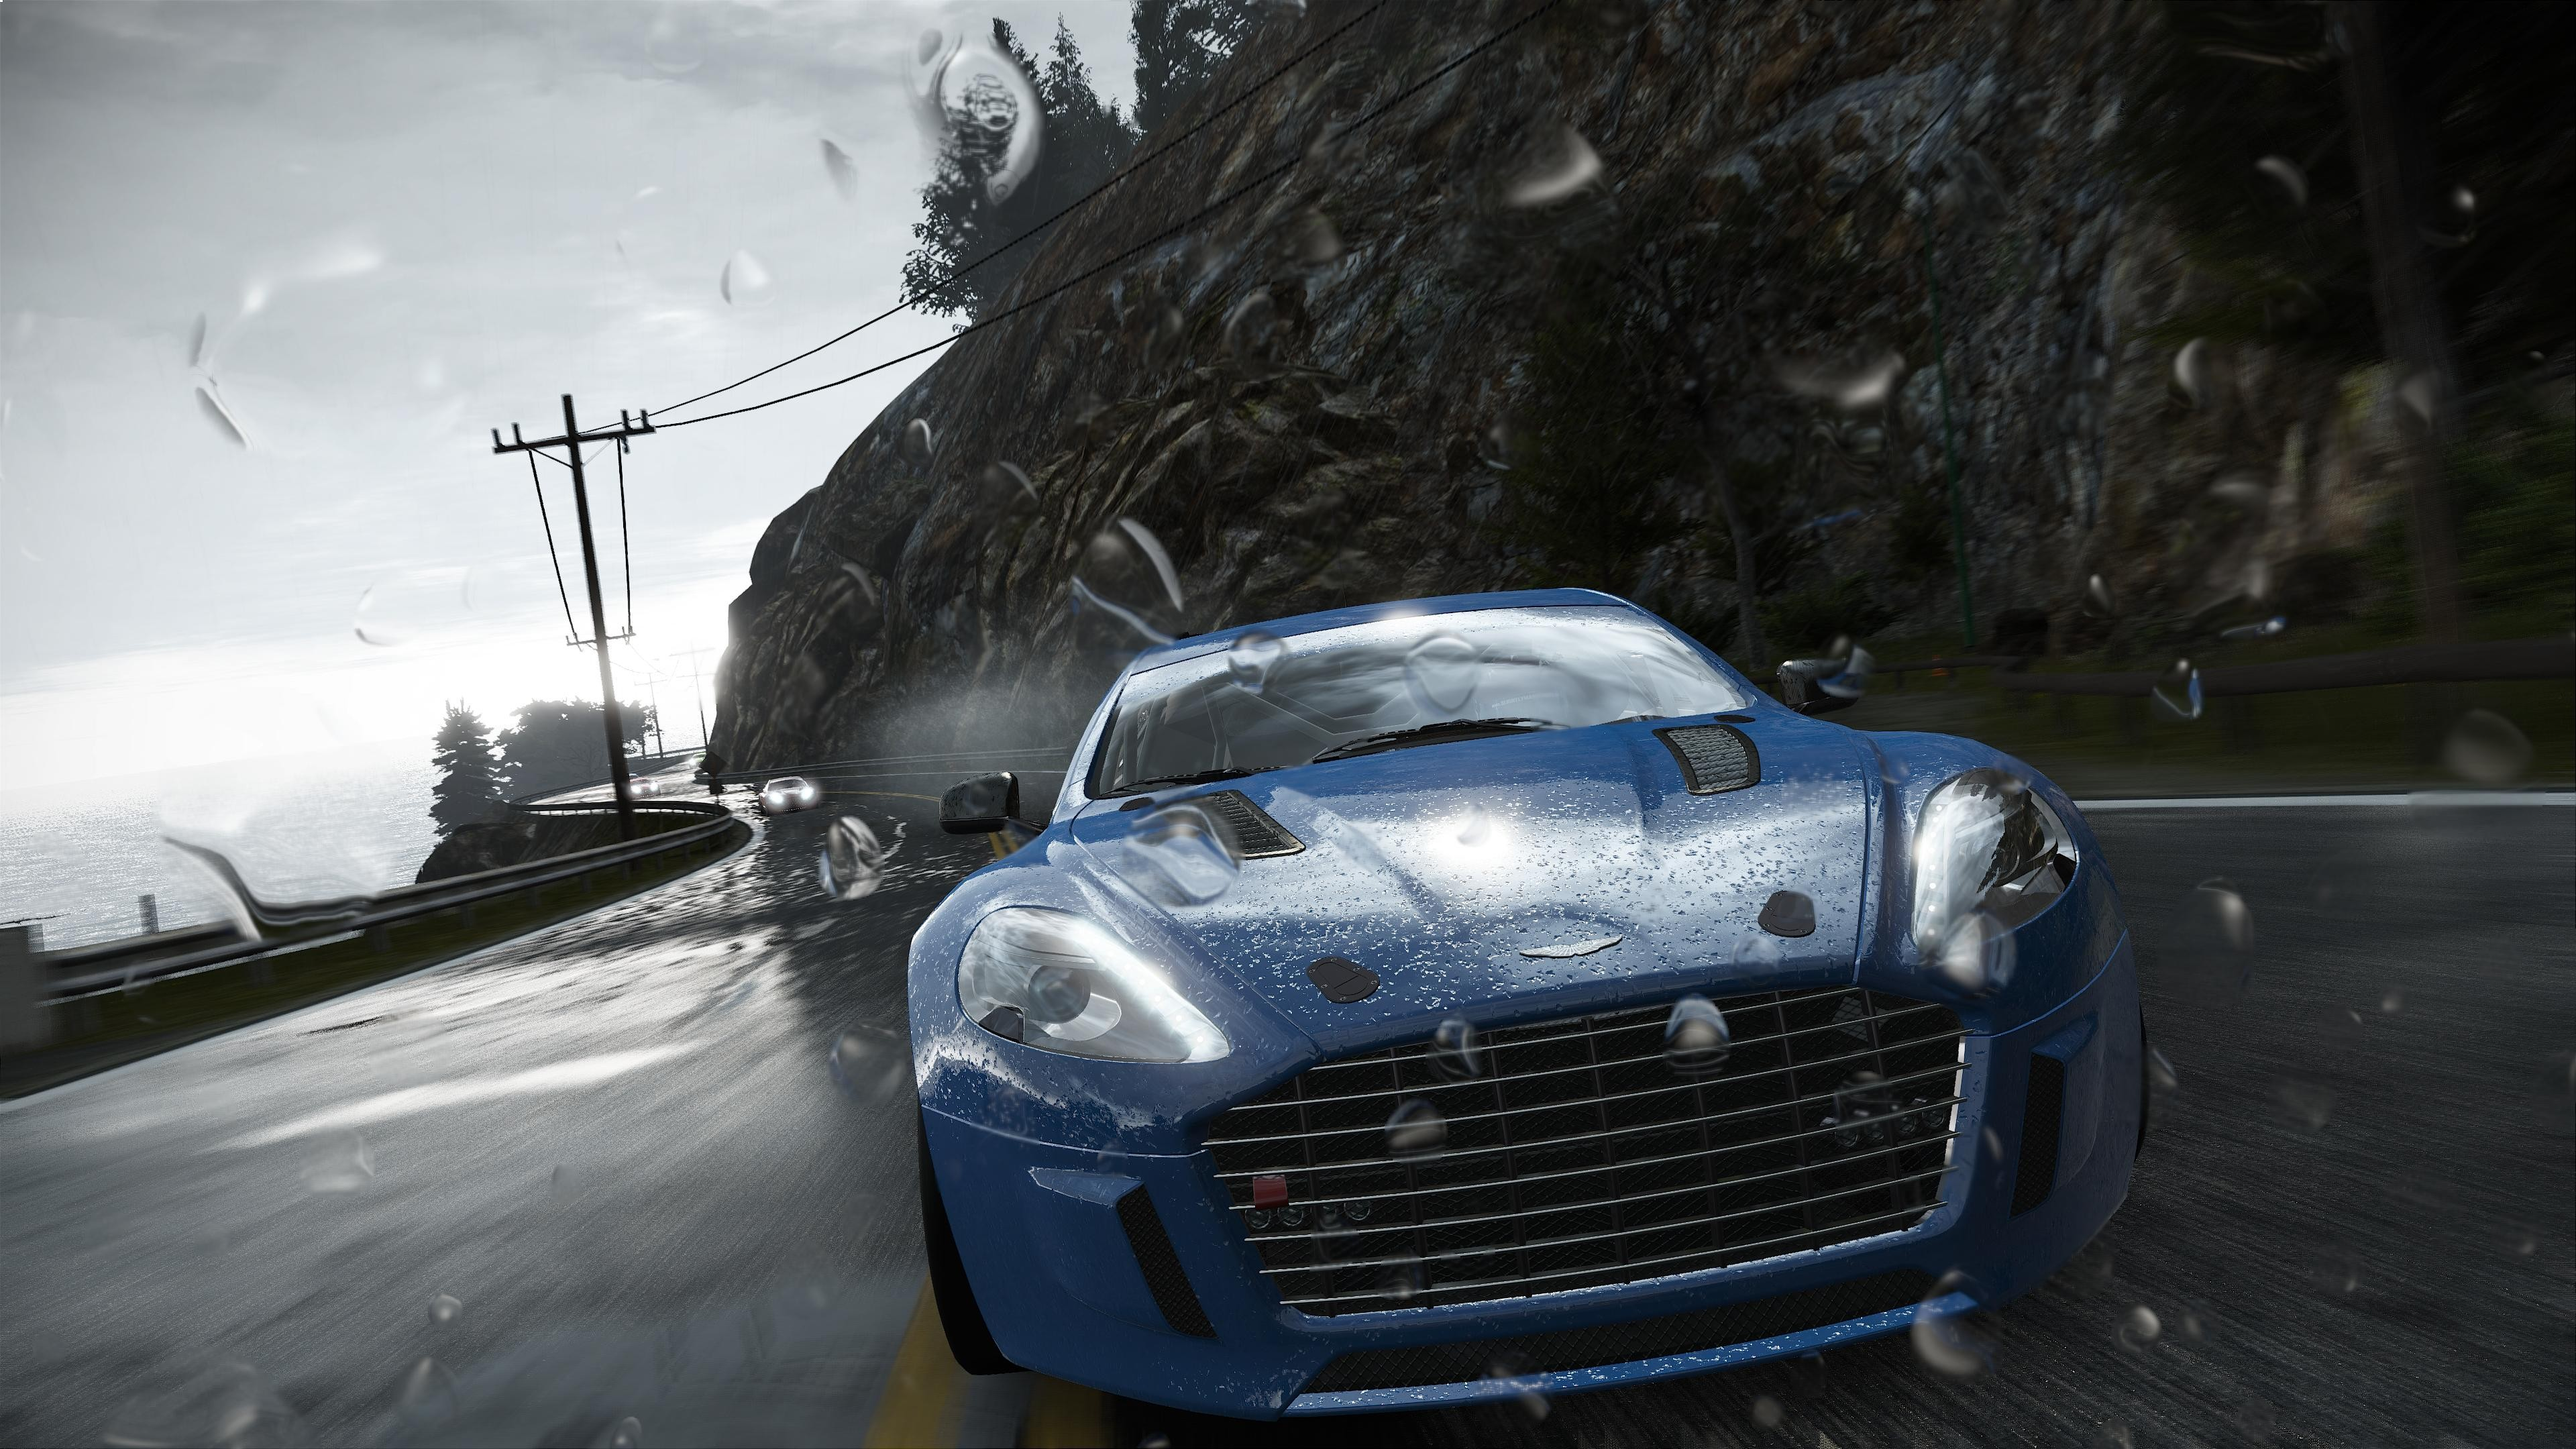 Best Hd Quotes Wallpapers For Pc Wallpaper Project Cars Best Games 2015 Best Racing Games